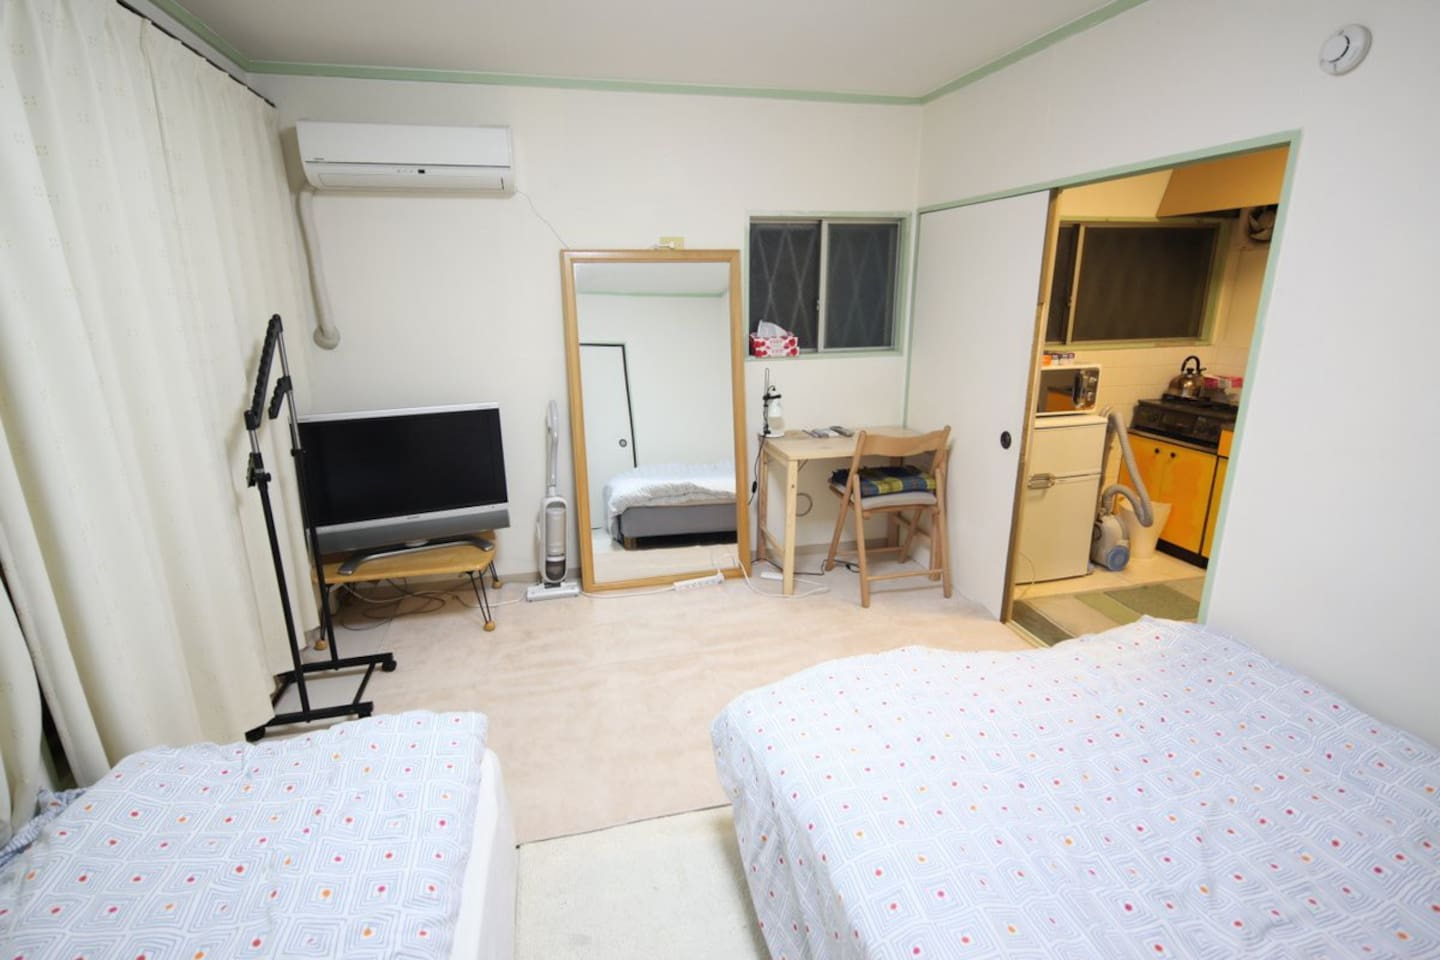 Bedroom with two beds and TV